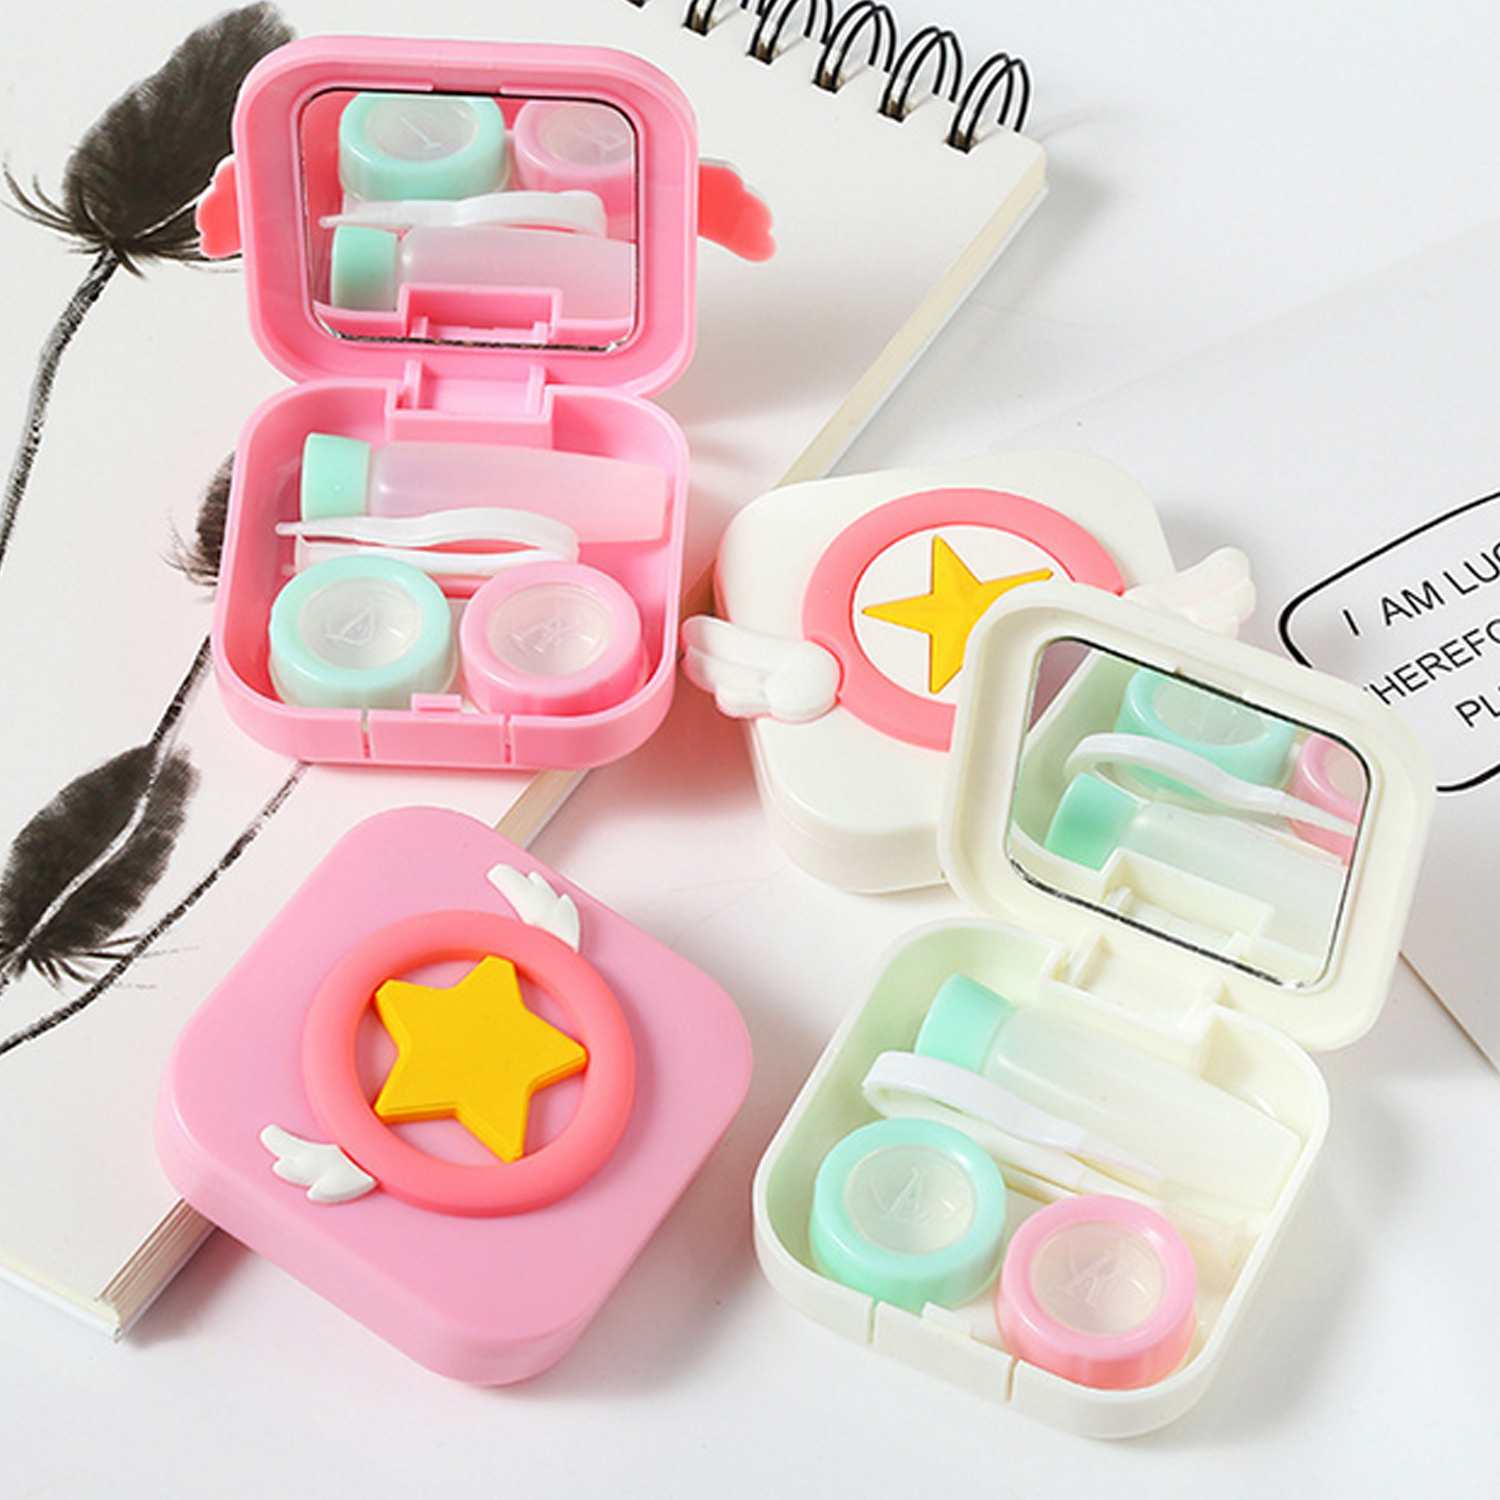 Cute Cartoon Contact Lens Case Storage Box With Tweezers Stick Solution Bottle HomeTravel Outdoor Daily Use Lenes Storage Box